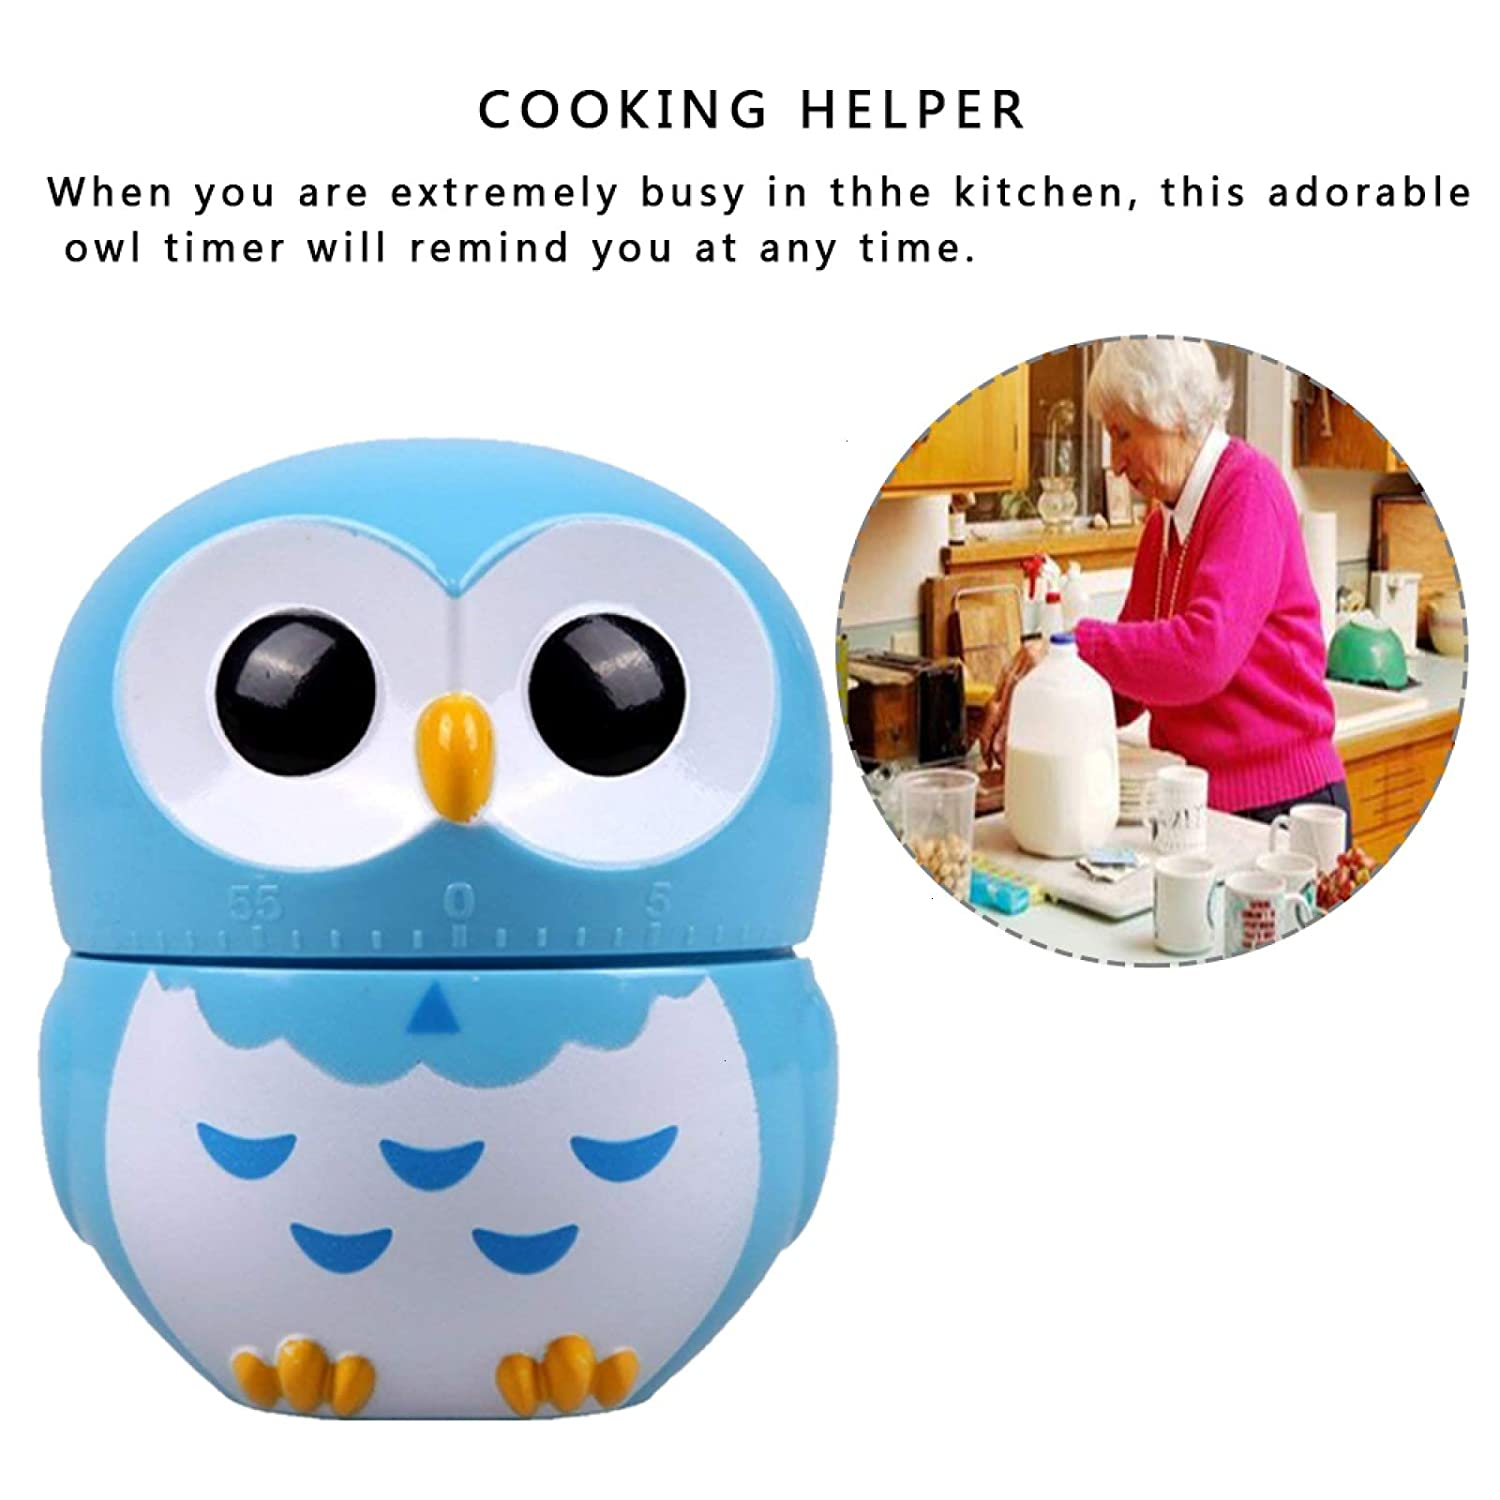 Amazon.com: Timer, Cartoon Owl Shaped Kitchen Cooking Baking Timers ...